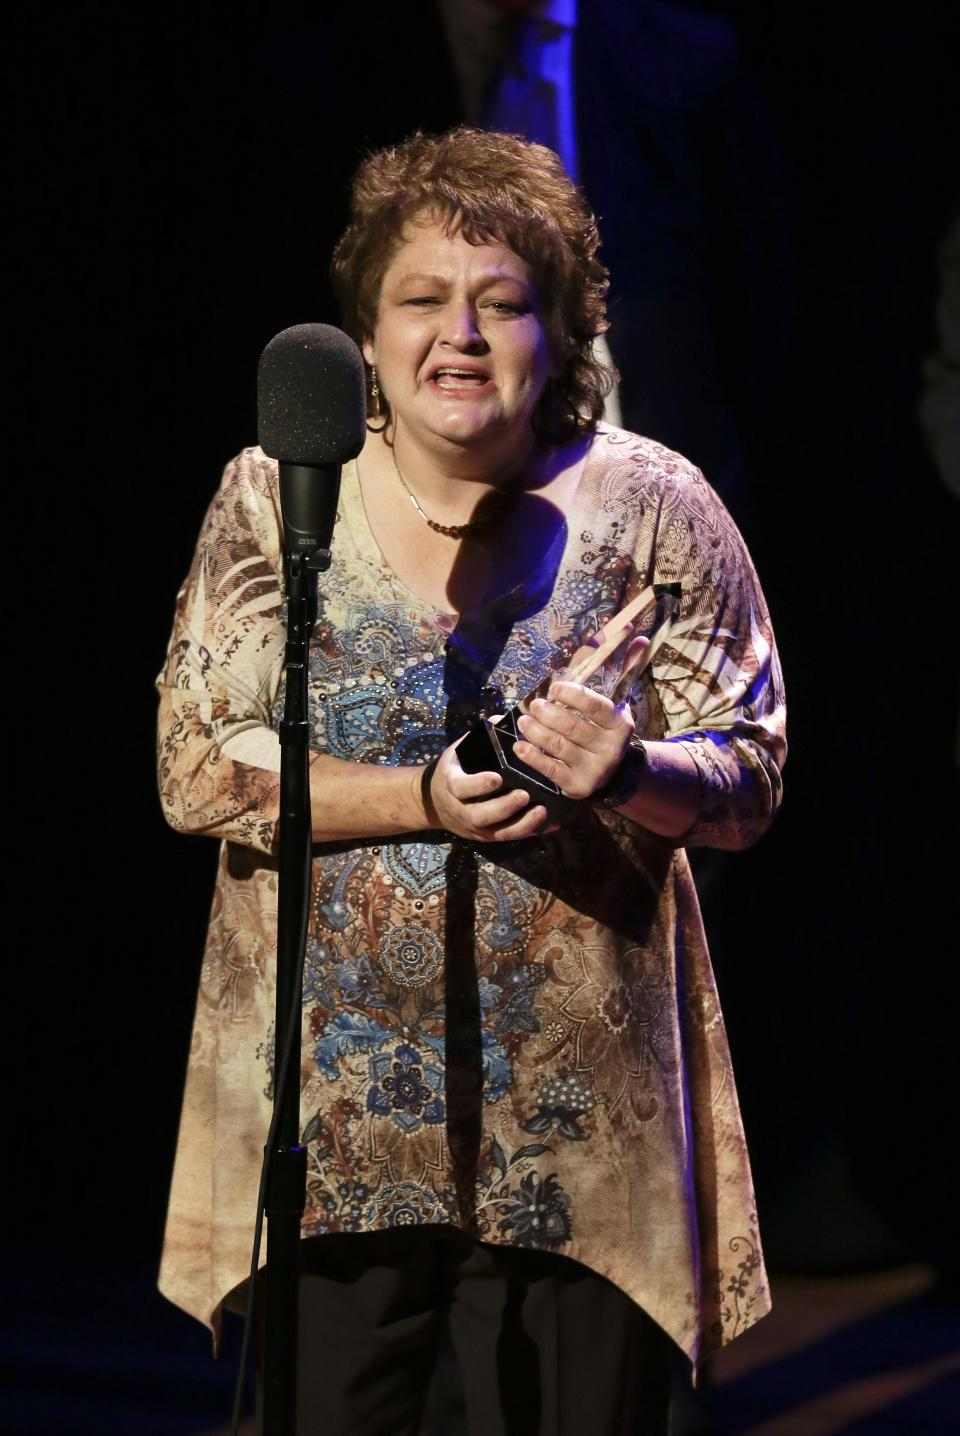 Dale Ann Bradley accepts the female vocalist of the year award at the International Bluegrass Music Association Awards show on Thursday, Sept. 27, 2012, in Nashville, Tenn. (AP Photo/Mark Humphrey)